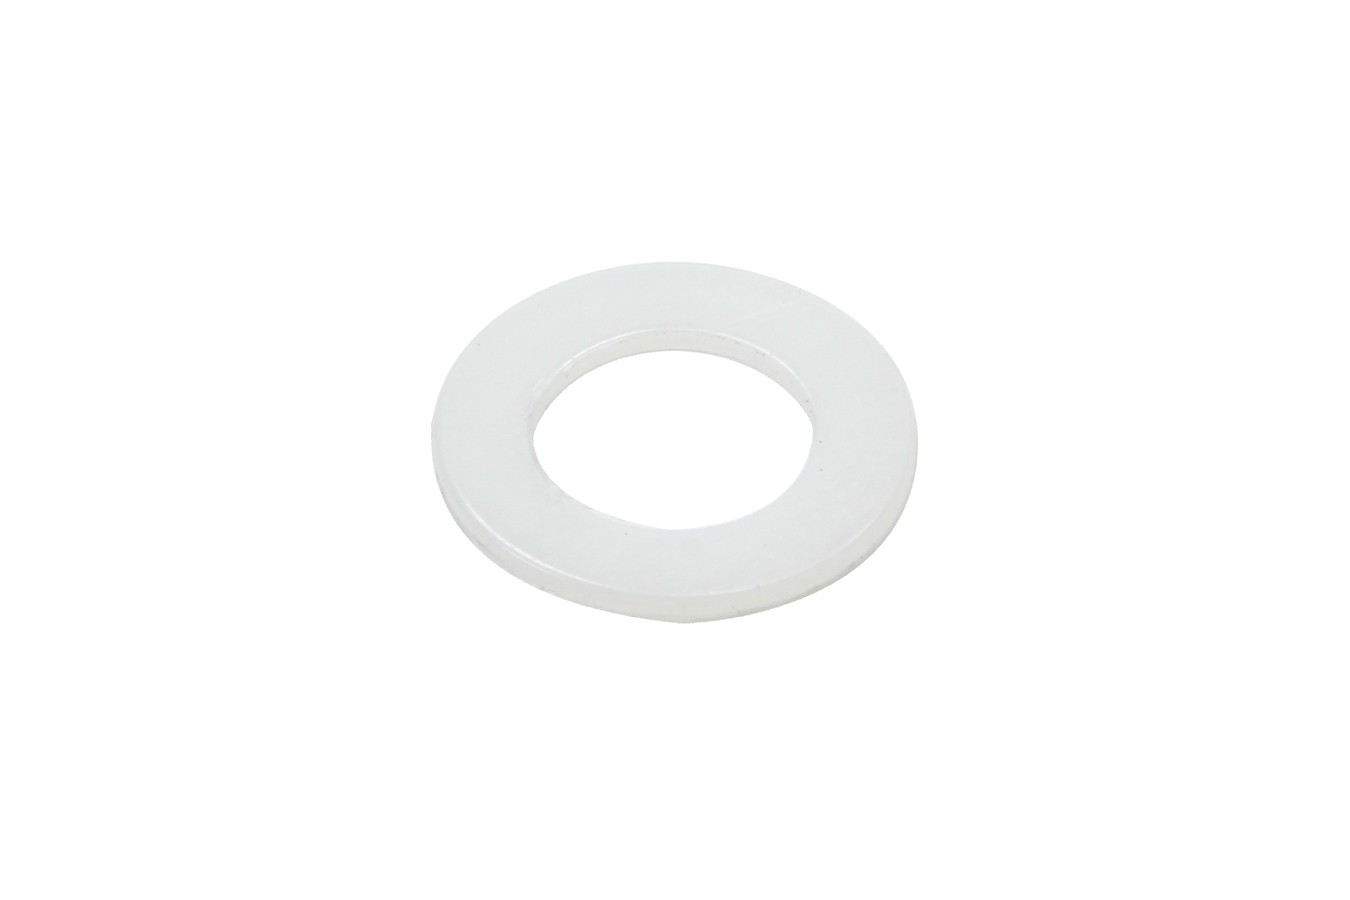 Jaz 850-506-04 Sealing Washer, 6 AN, 1 in OD, 9/16 in ID, 0.063 in Thick, PTFE, Each